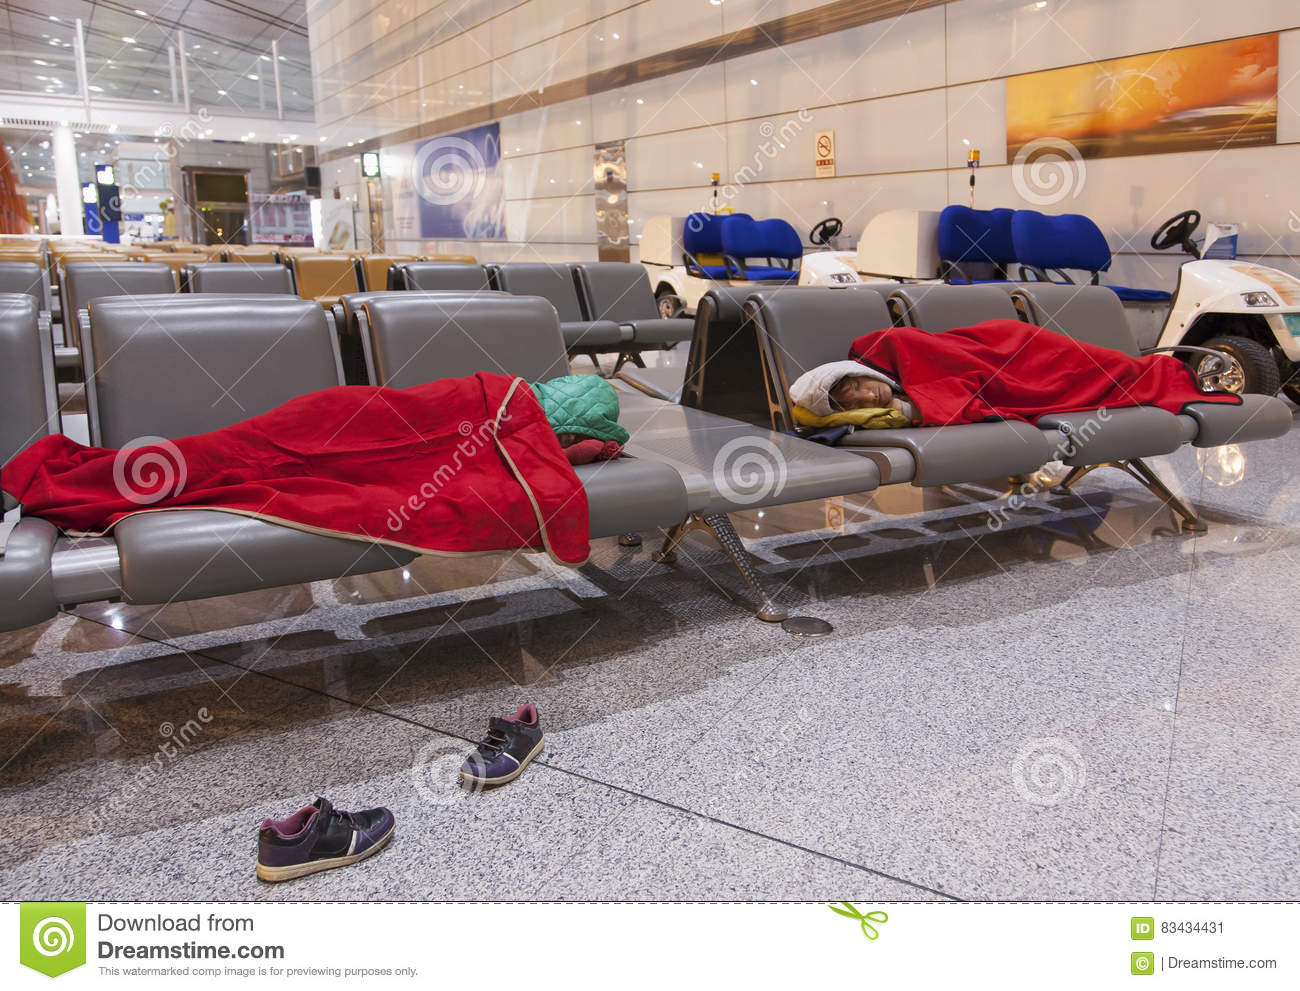 Tired travelers sleeping on the airpot departure gates bench